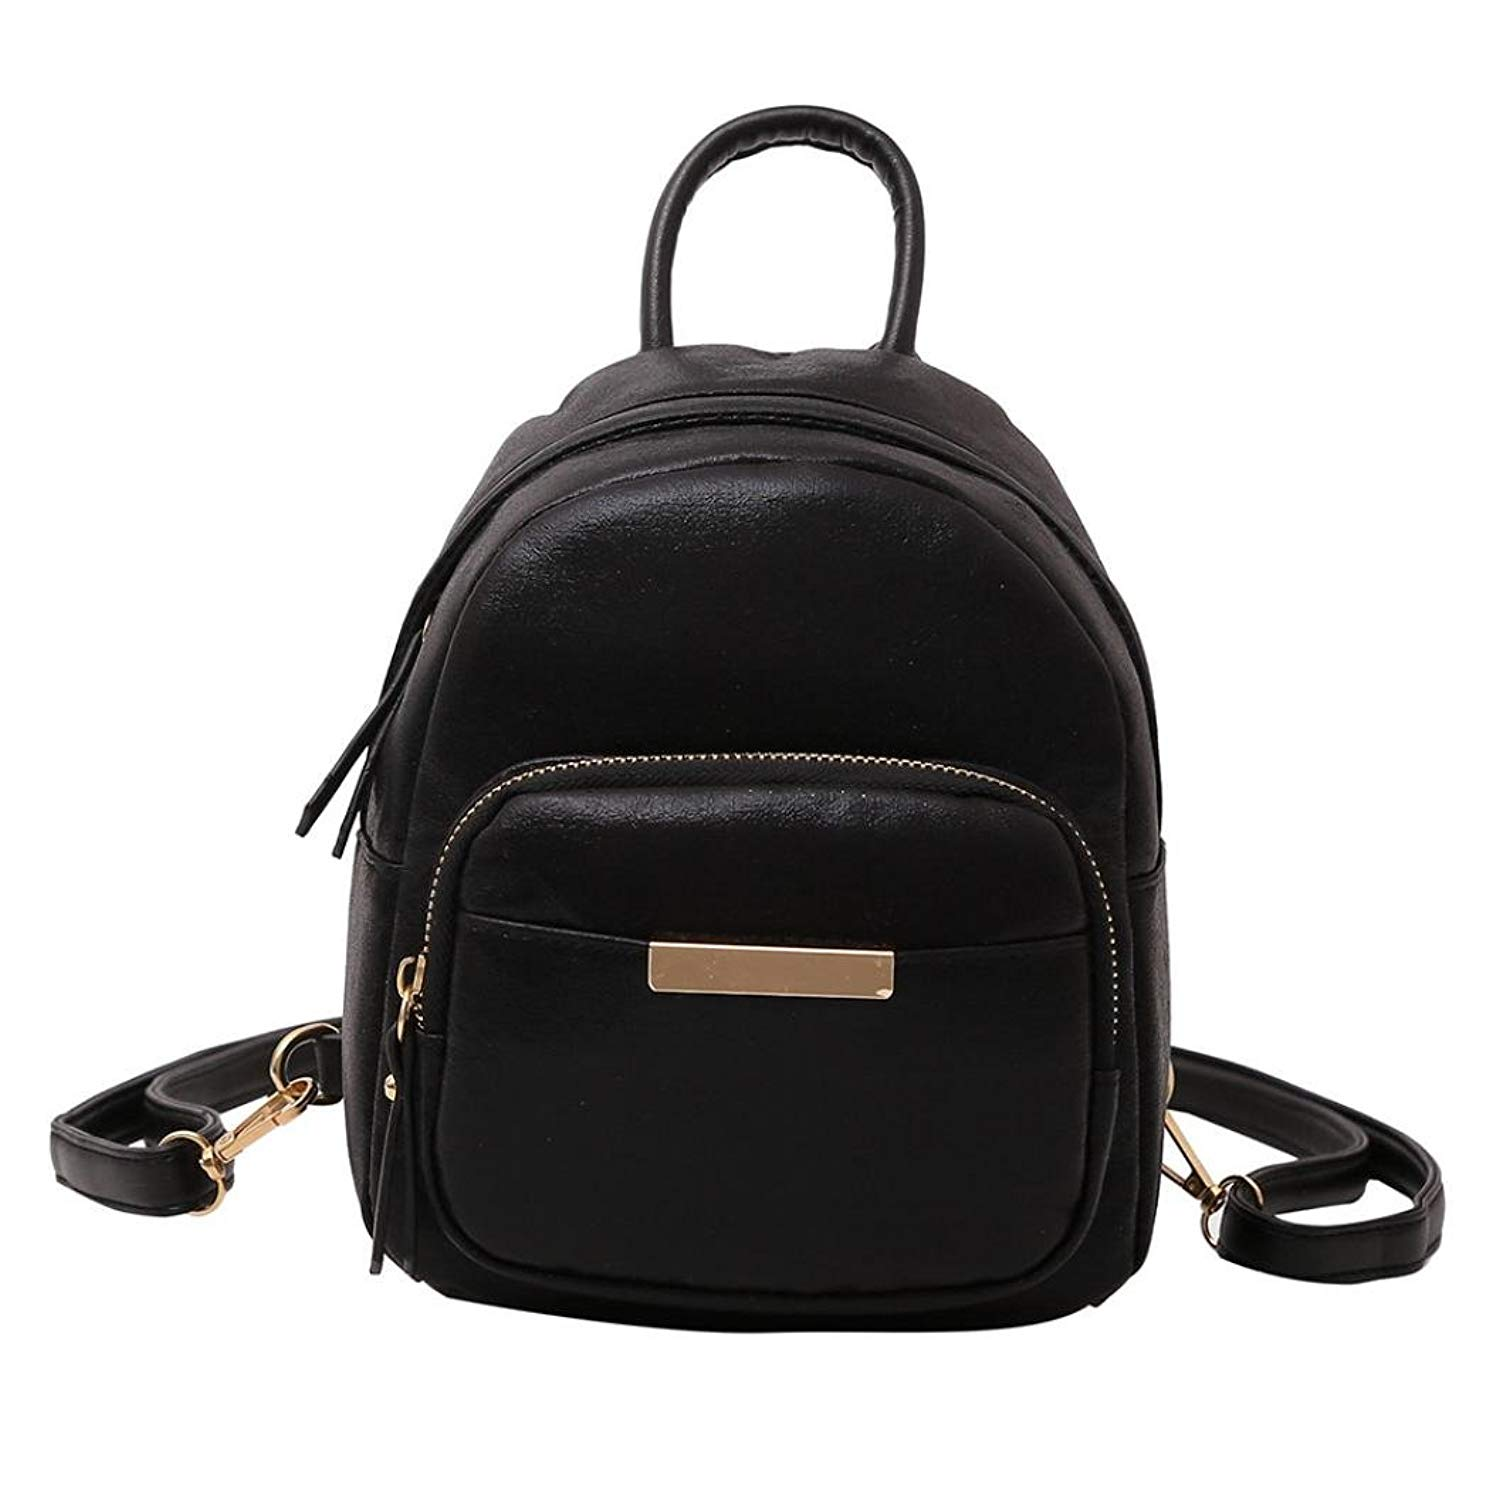 edb75e8045 Get Quotations · Women Leather Backpack Purse Satchel School Bags Casual Travel  Daypacks for Girls